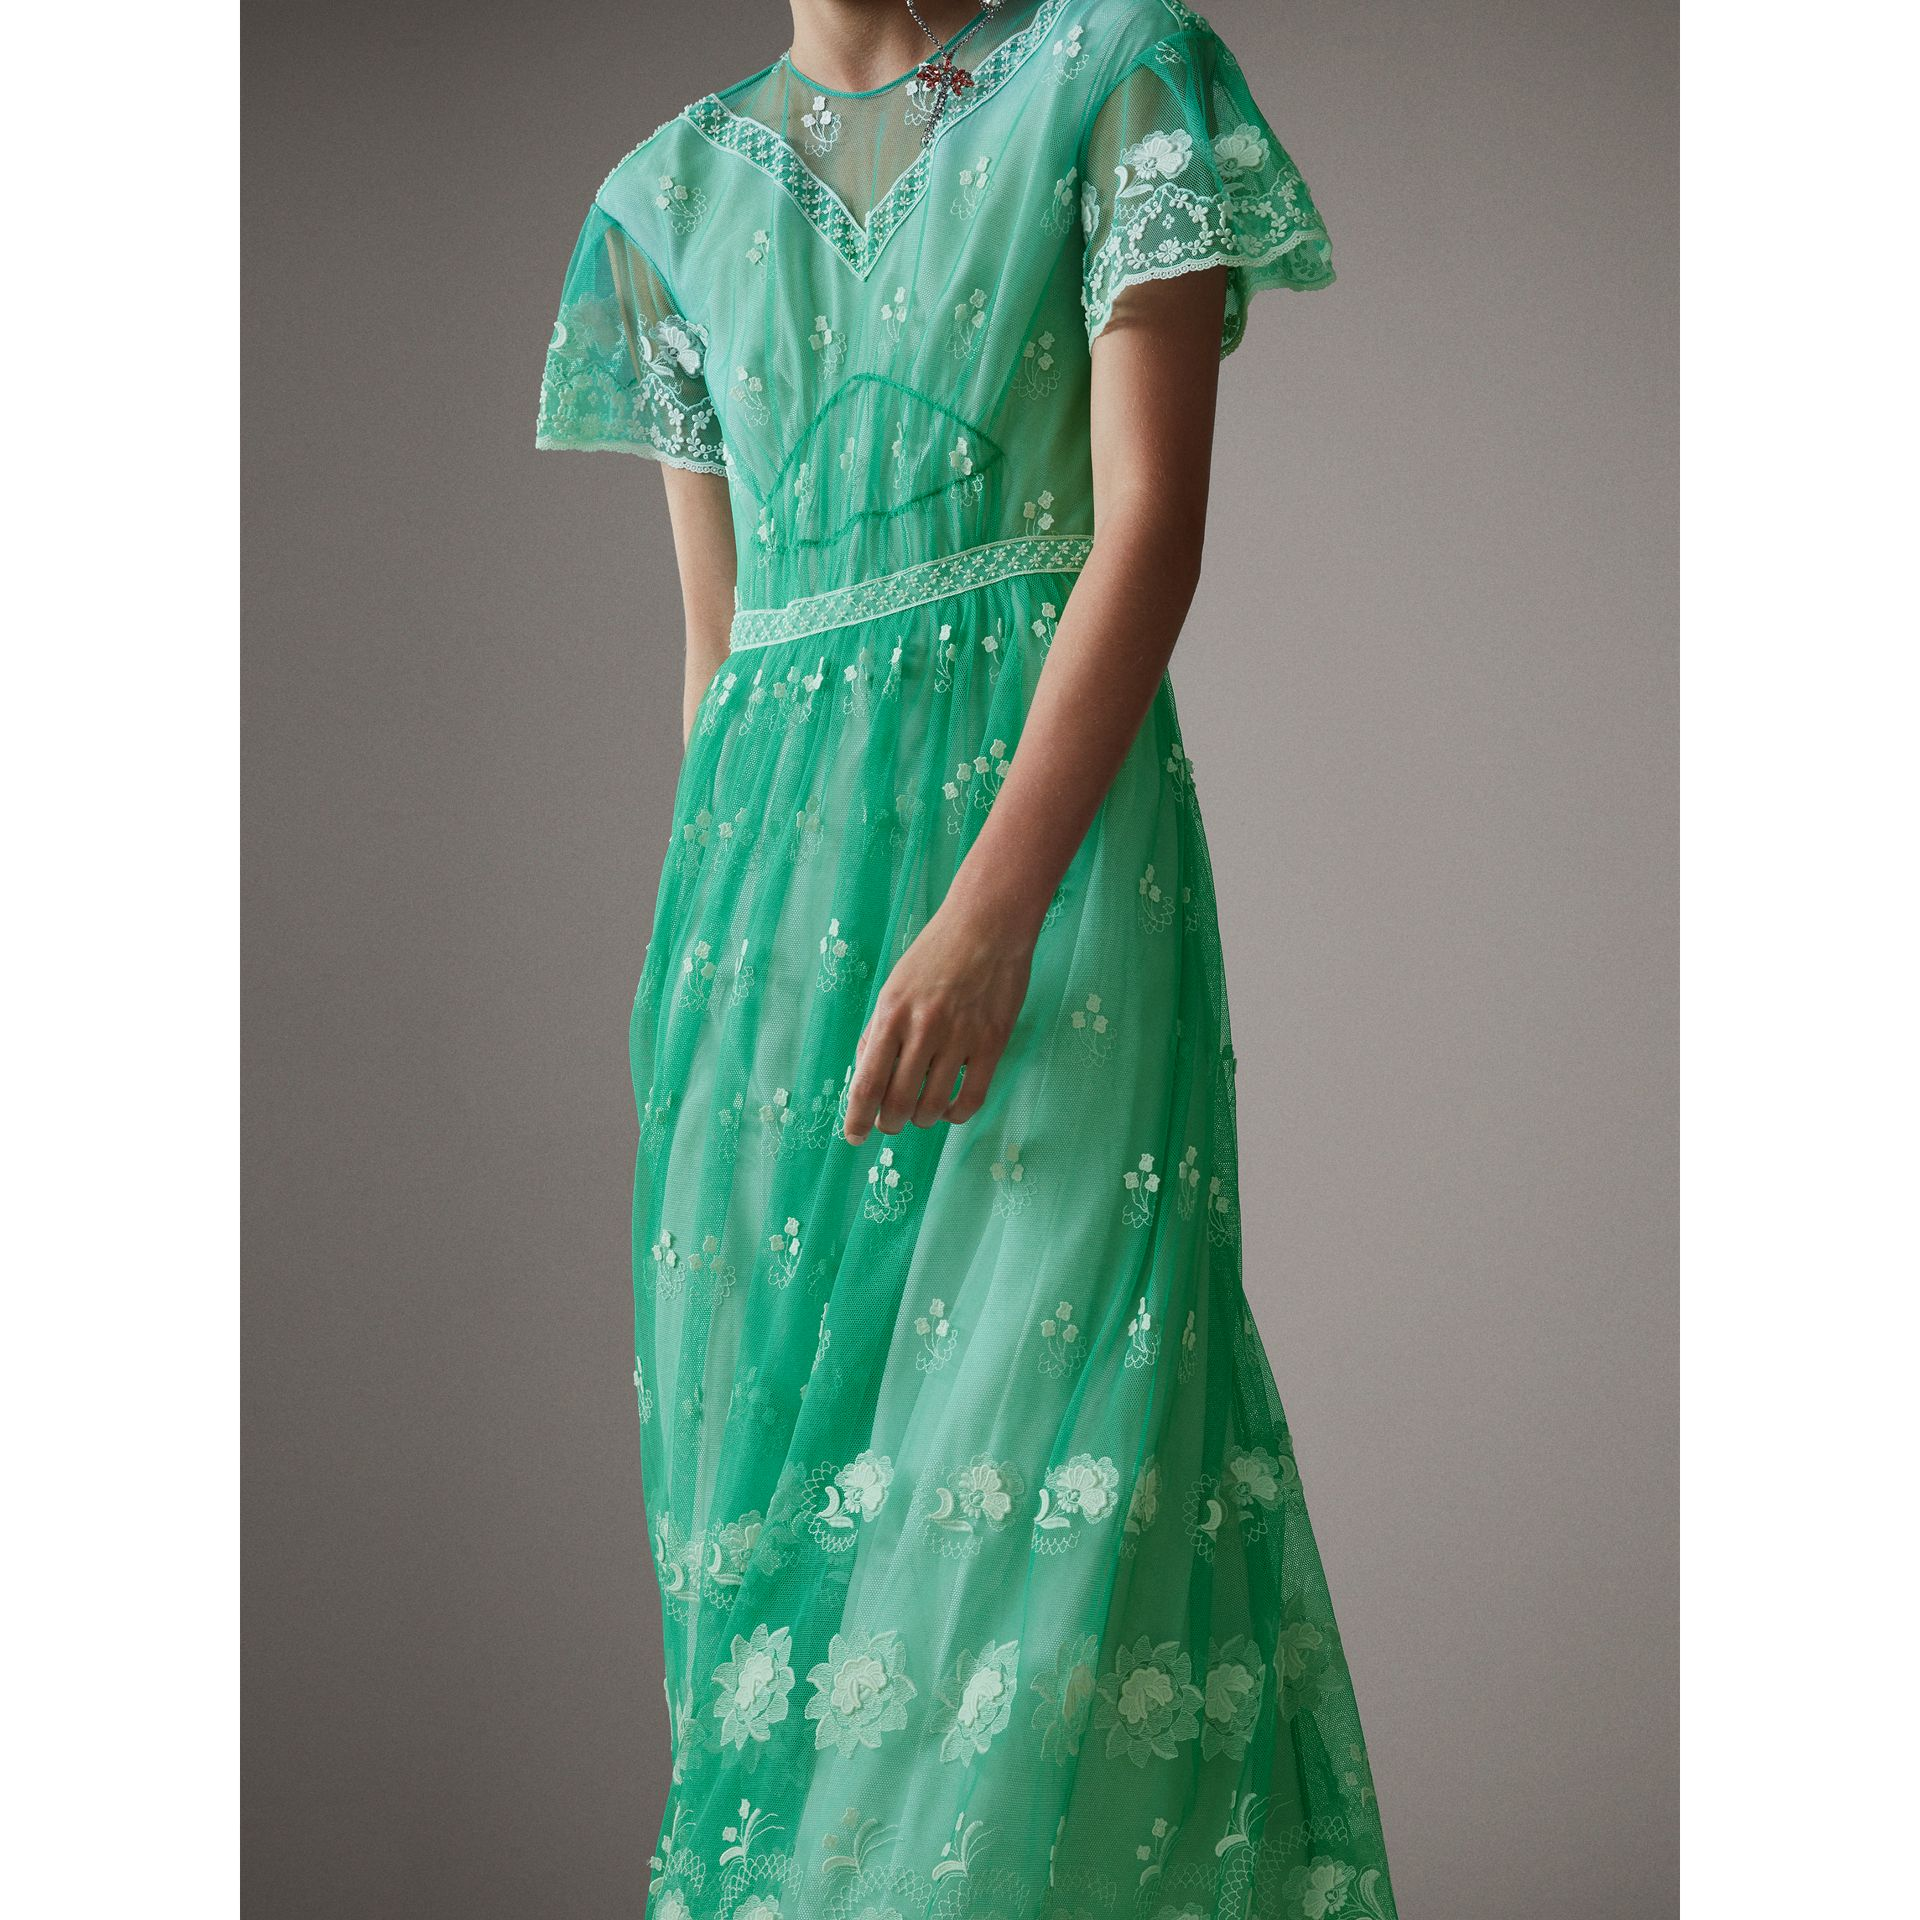 Embroidered Tulle Gathered Dress in Aqua Green/white - Women | Burberry Singapore - gallery image 1